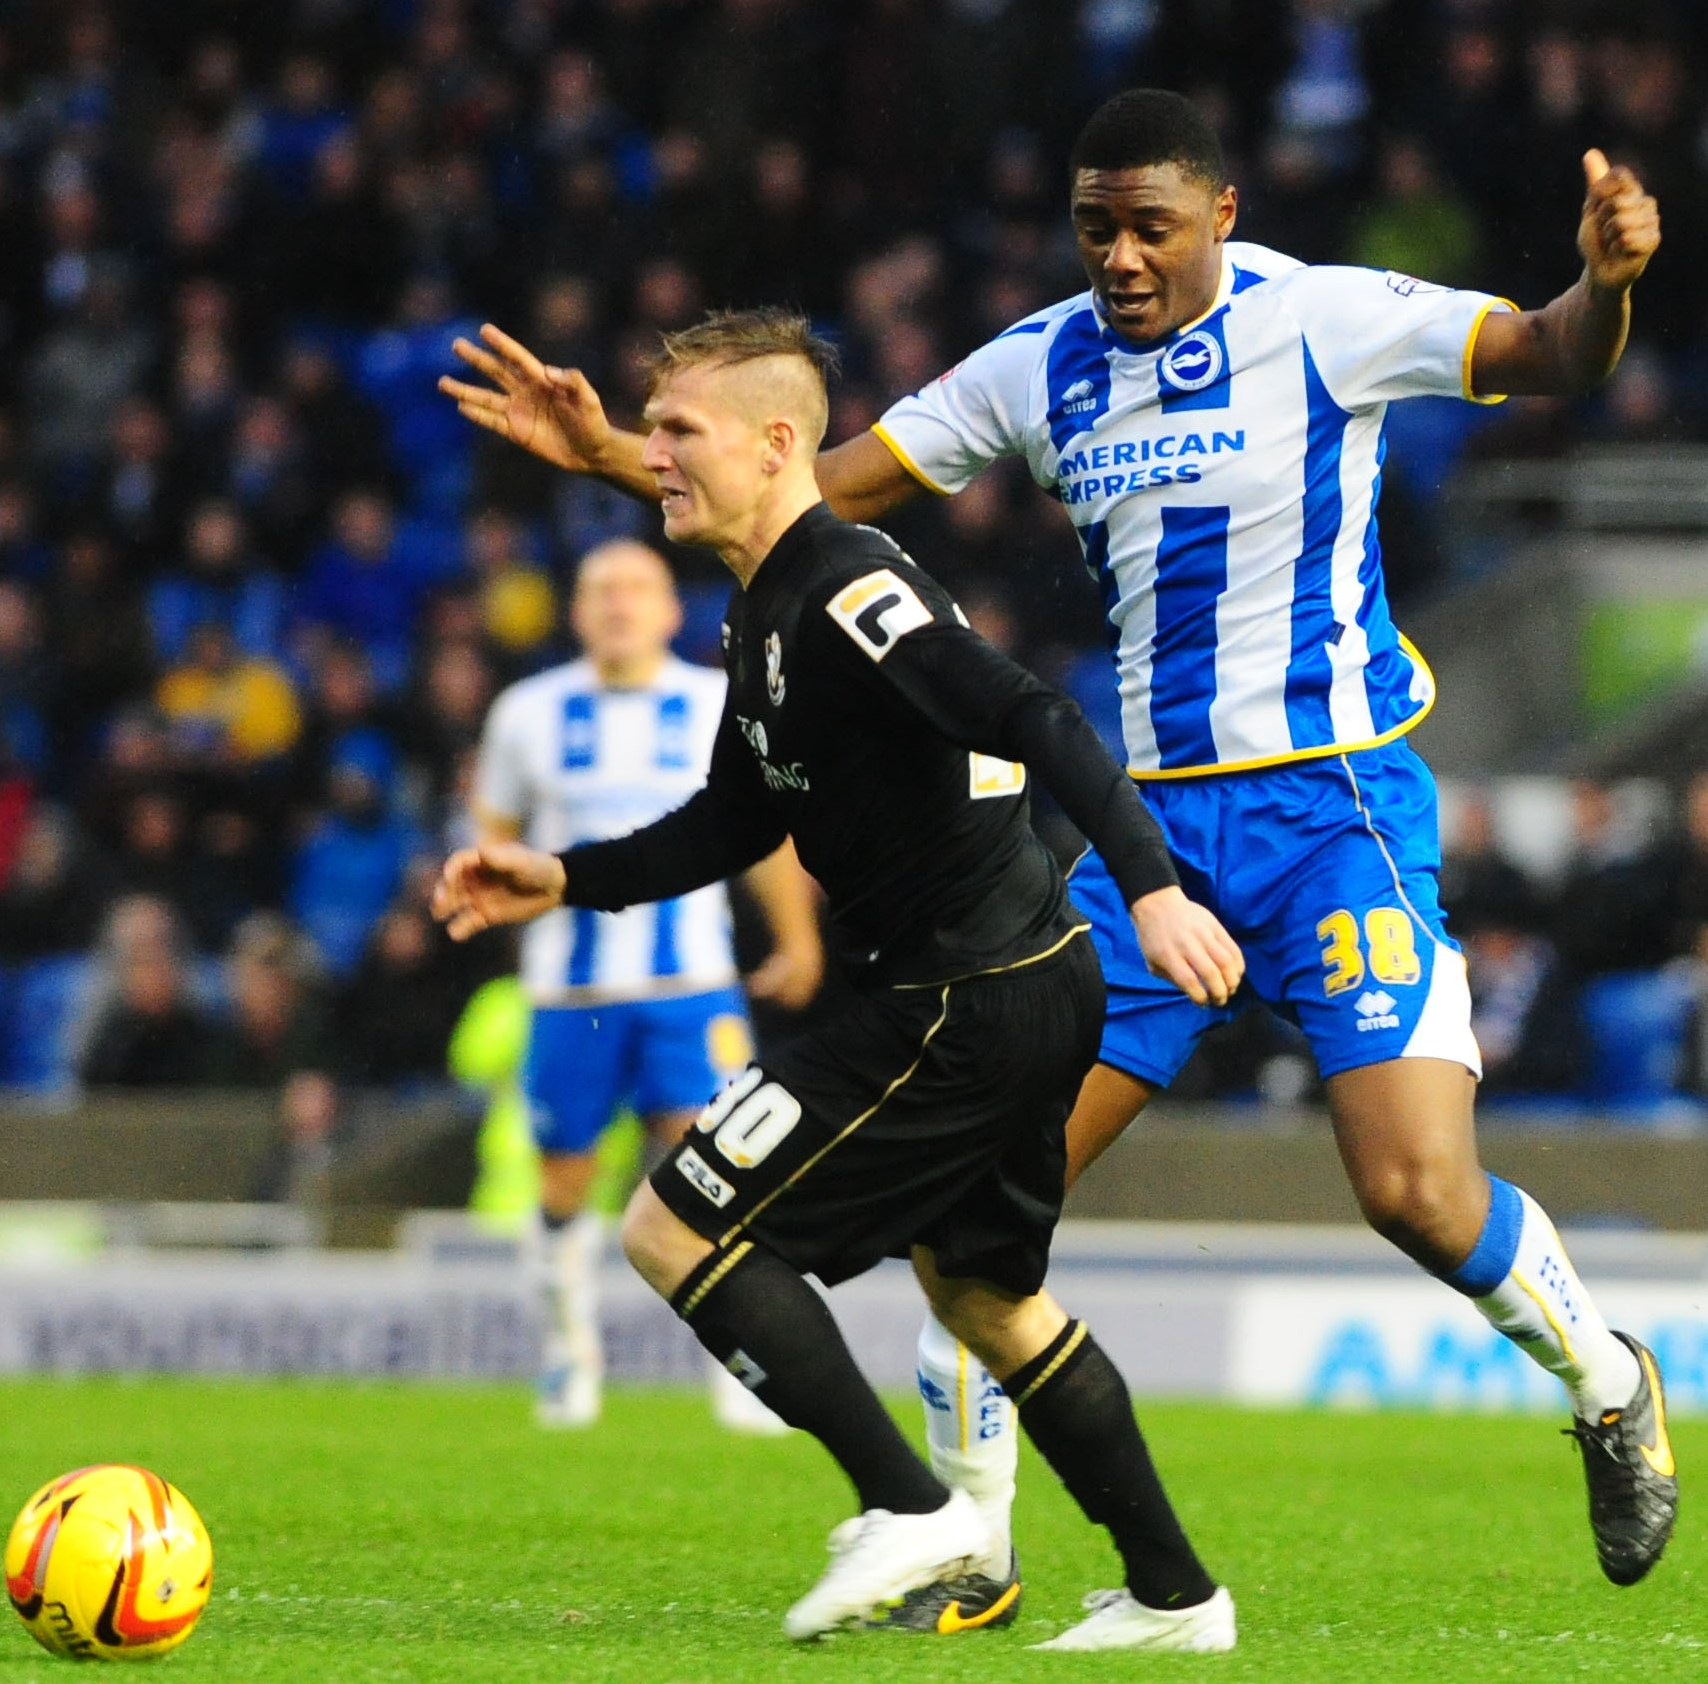 Rohan Ince has been a big presence in midfield for Albion